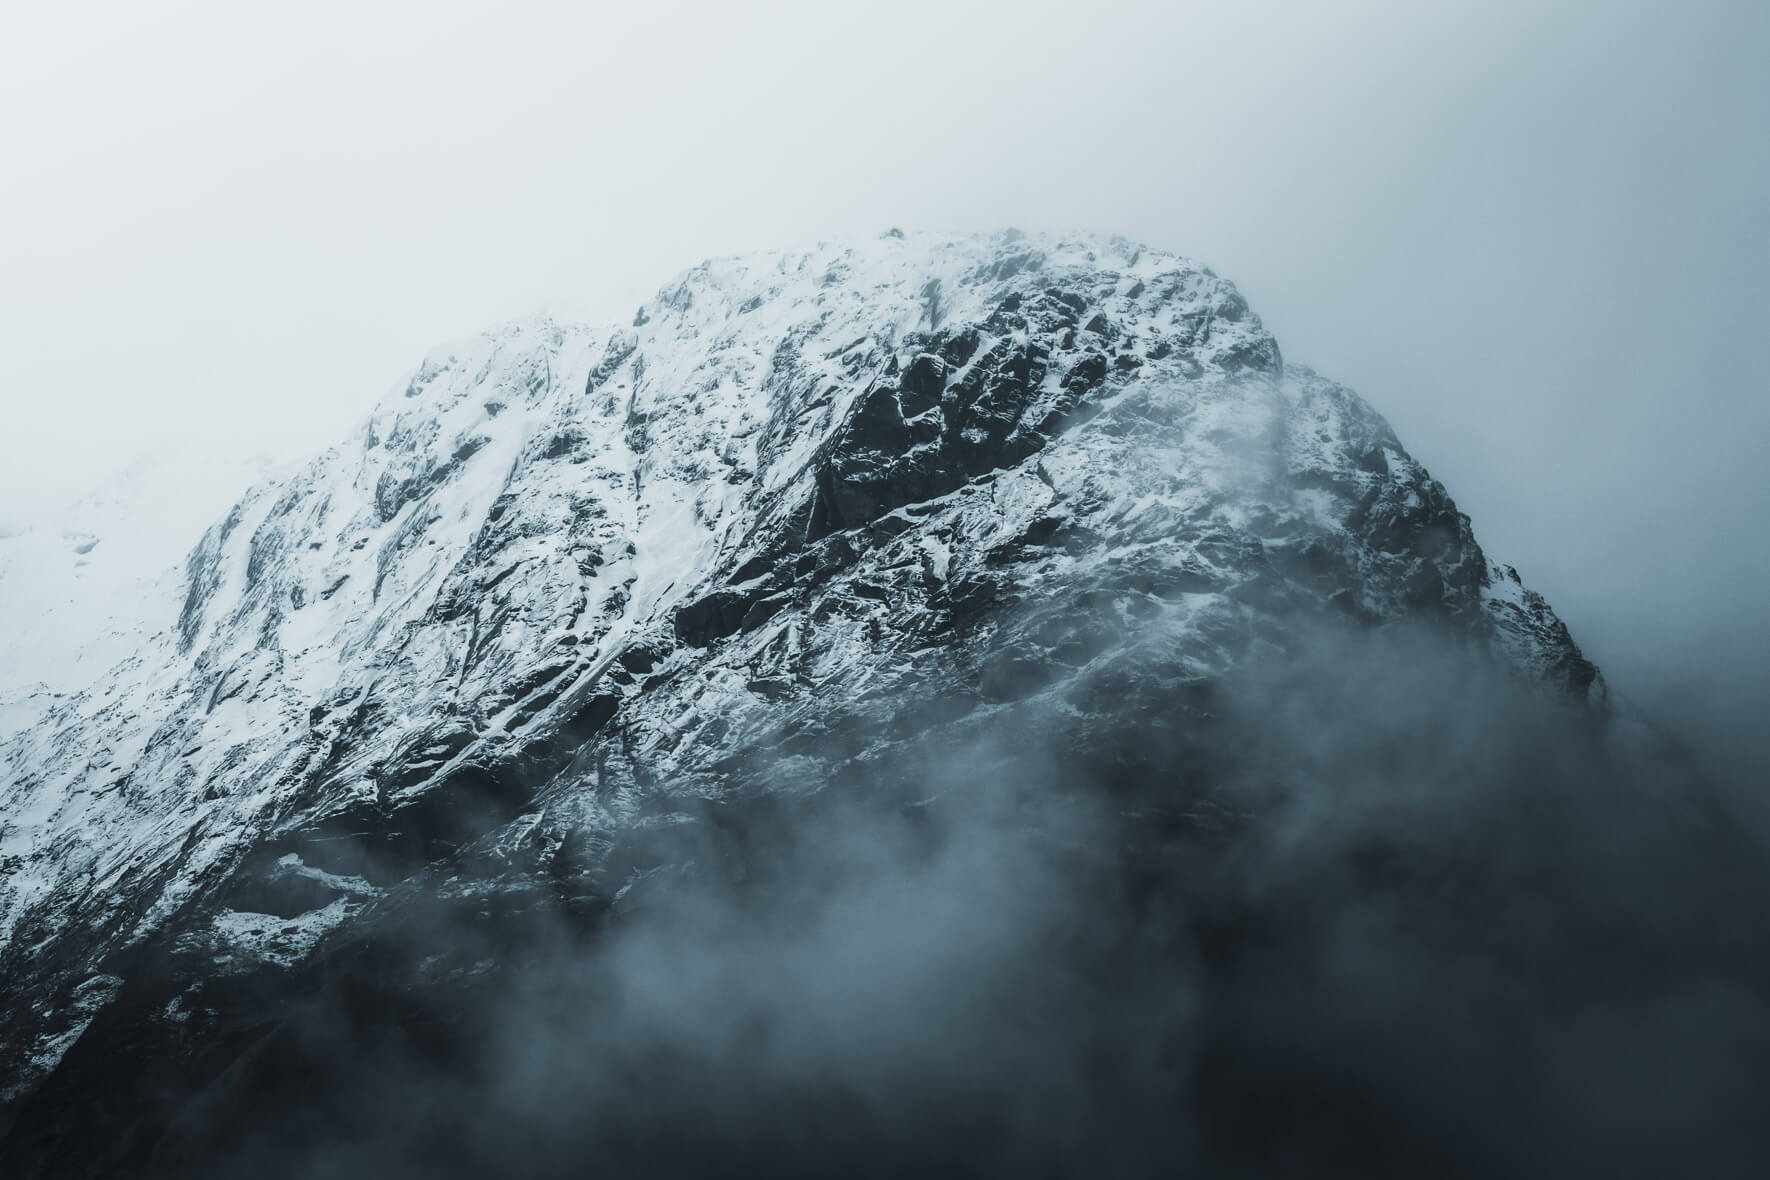 First snow of winter on the mountains of Jostedal, Norway